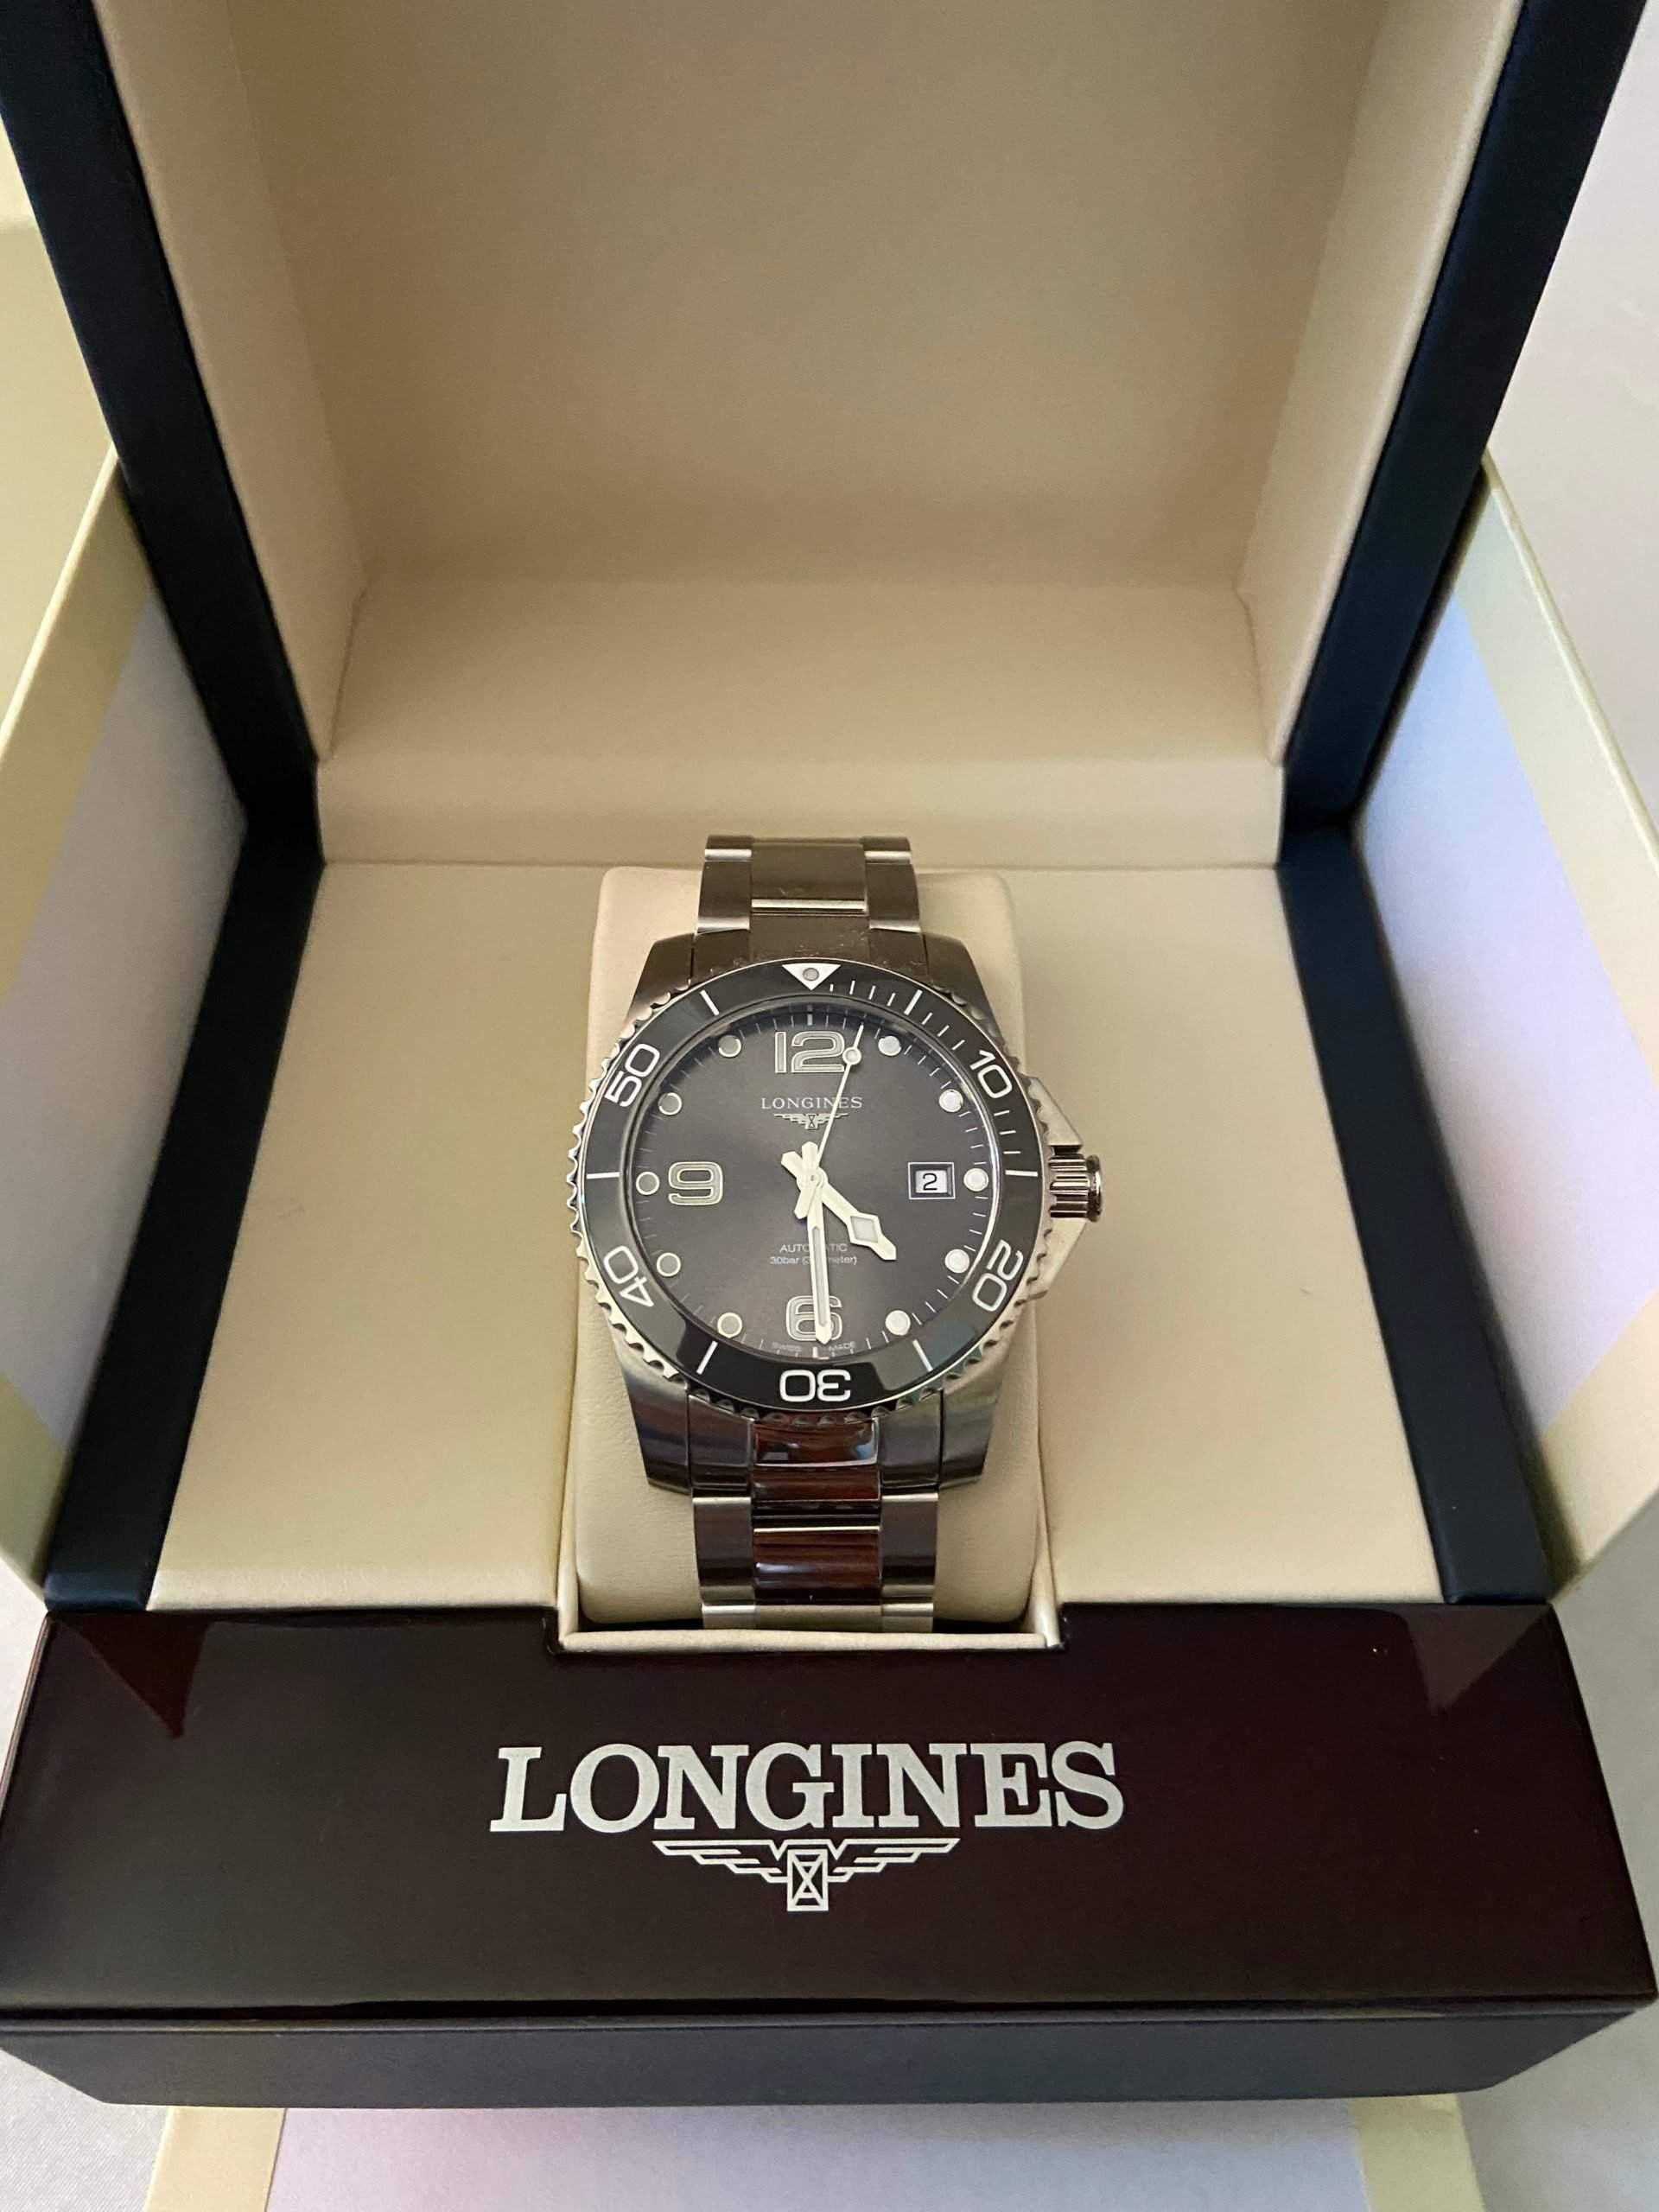 An affordable, iconic diving watch with a proven design: the Longines HydroConquest